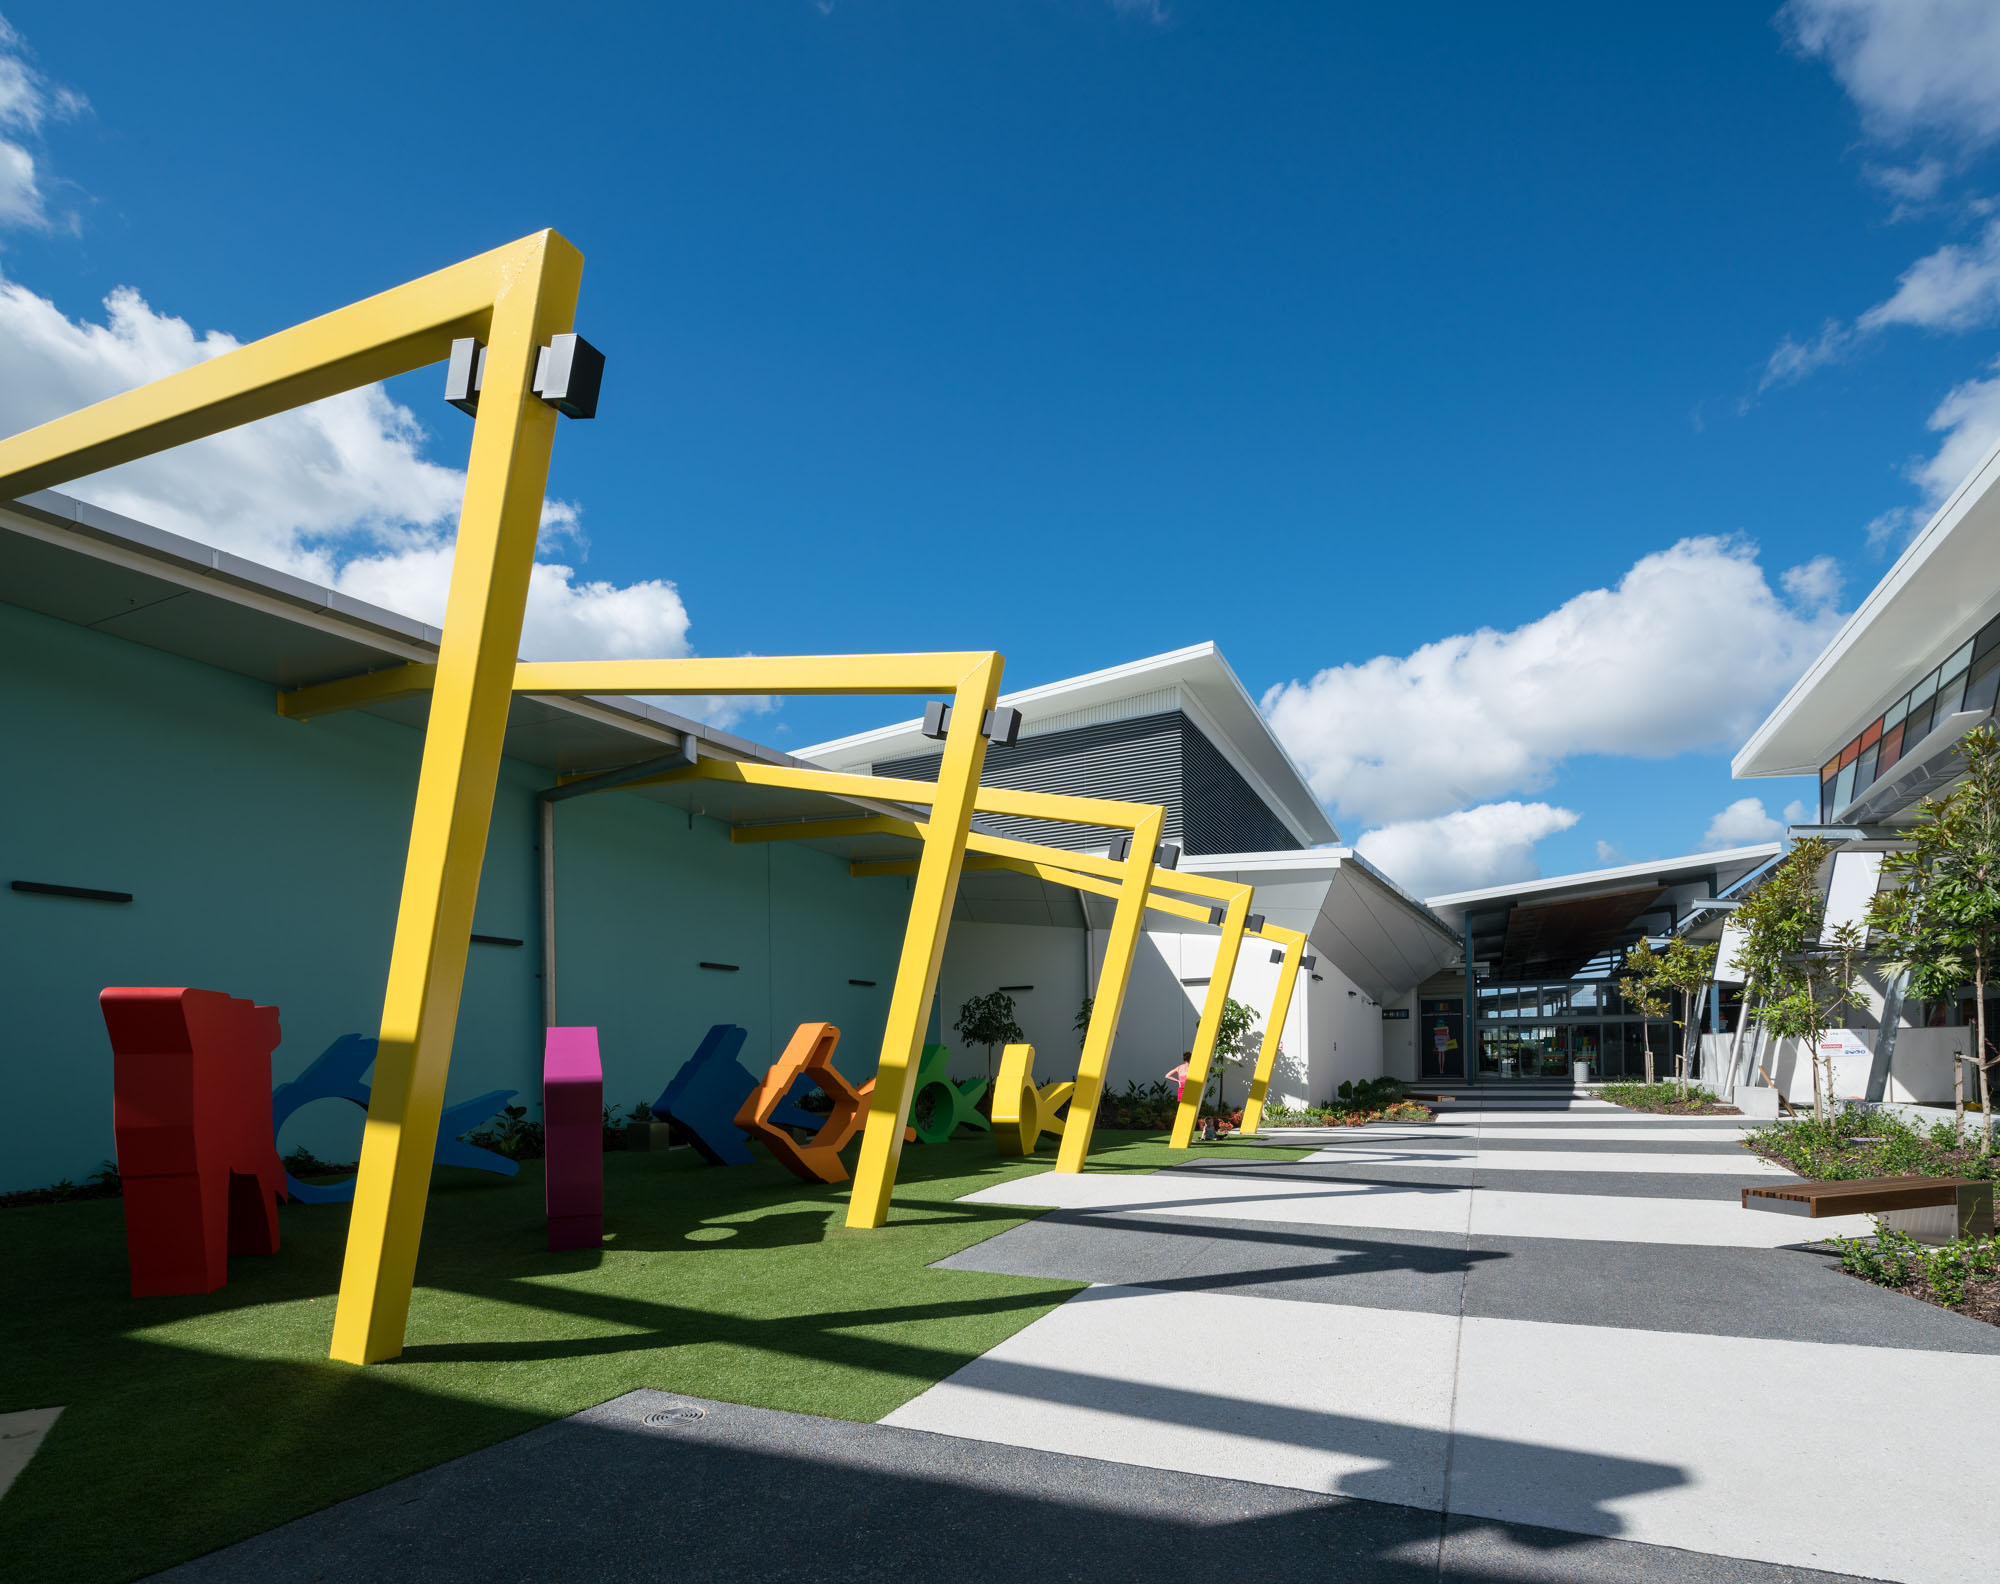 Our skygate dfo project wins pca retail property award thomson